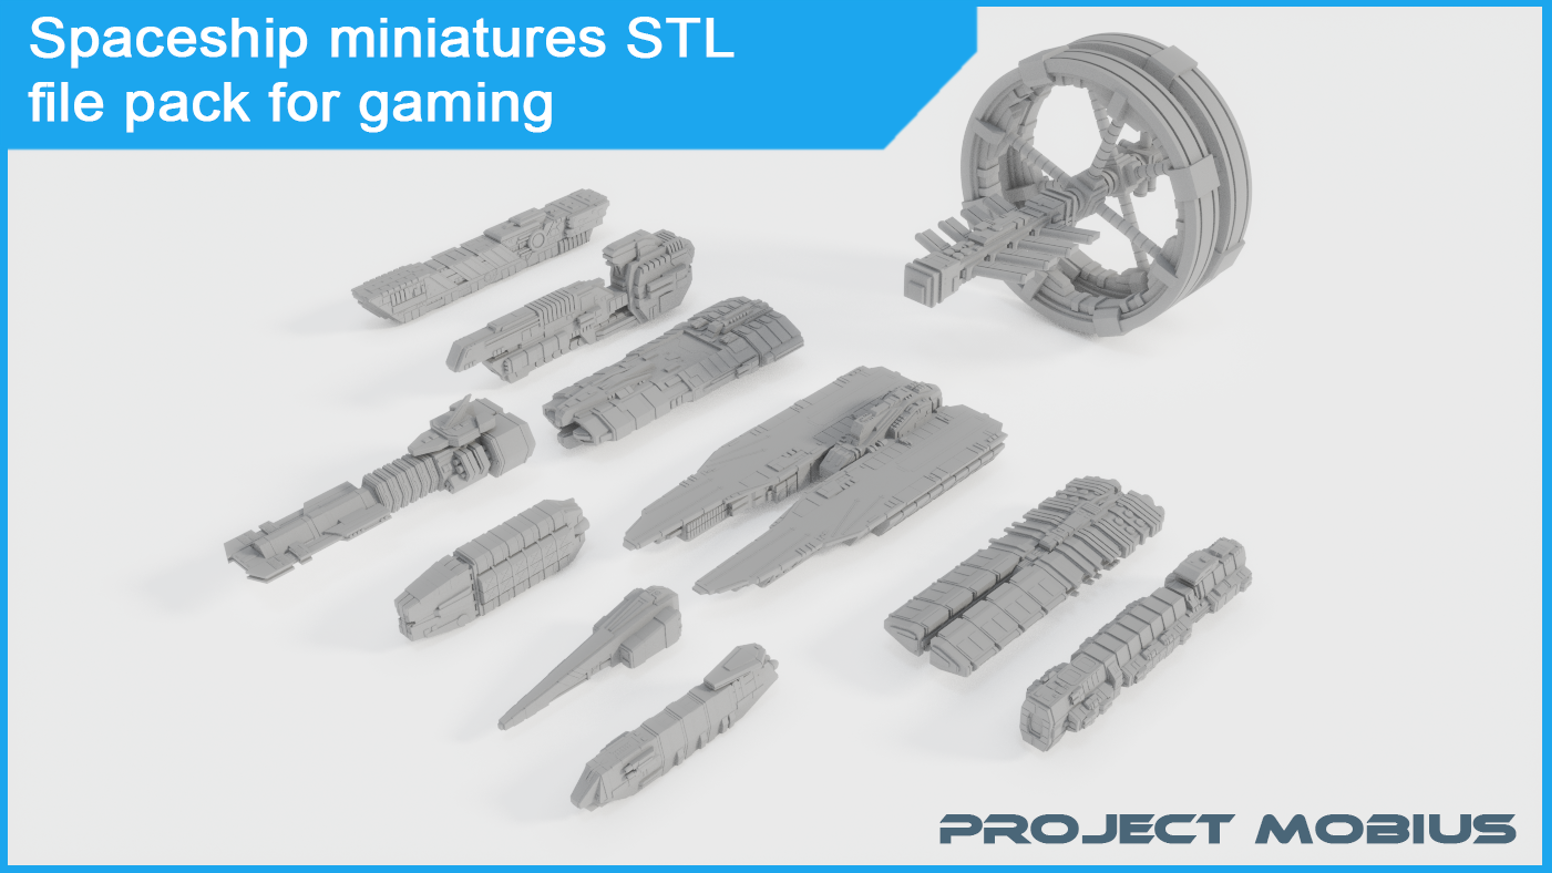 Printable spaceship miniatures STL file pack for gaming by Project